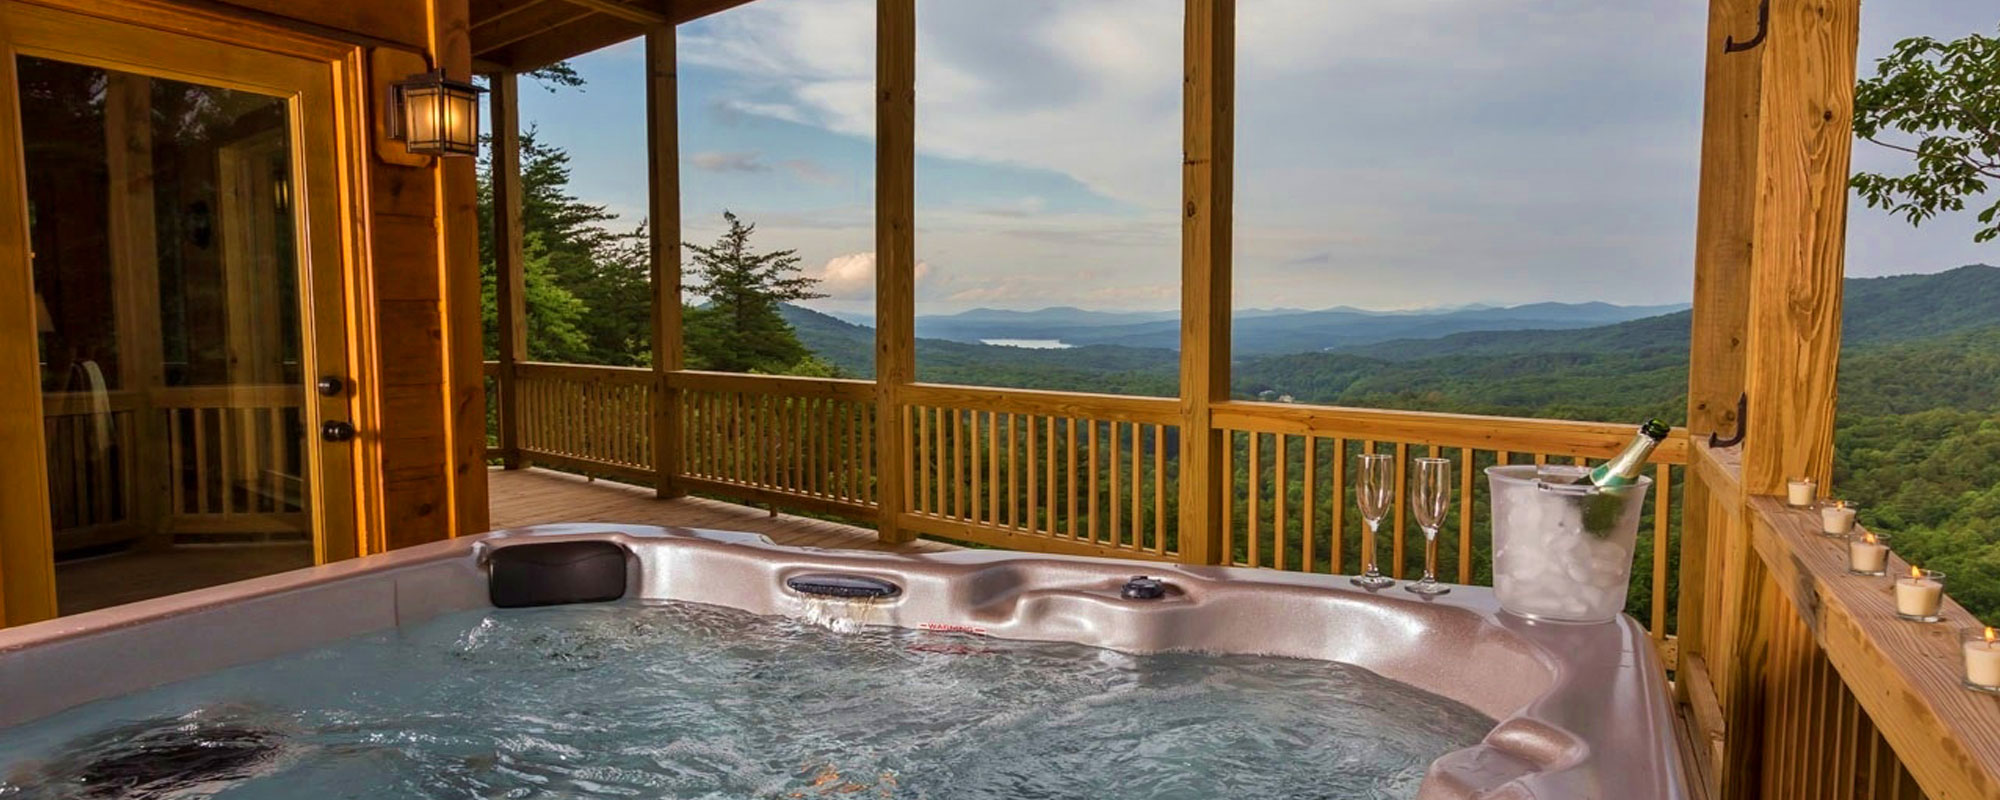 GA Luxury Cabin Rental Hot Tub. North Georgia Mountain Cabin Rentals 5 Bedroom Cabin Rentals